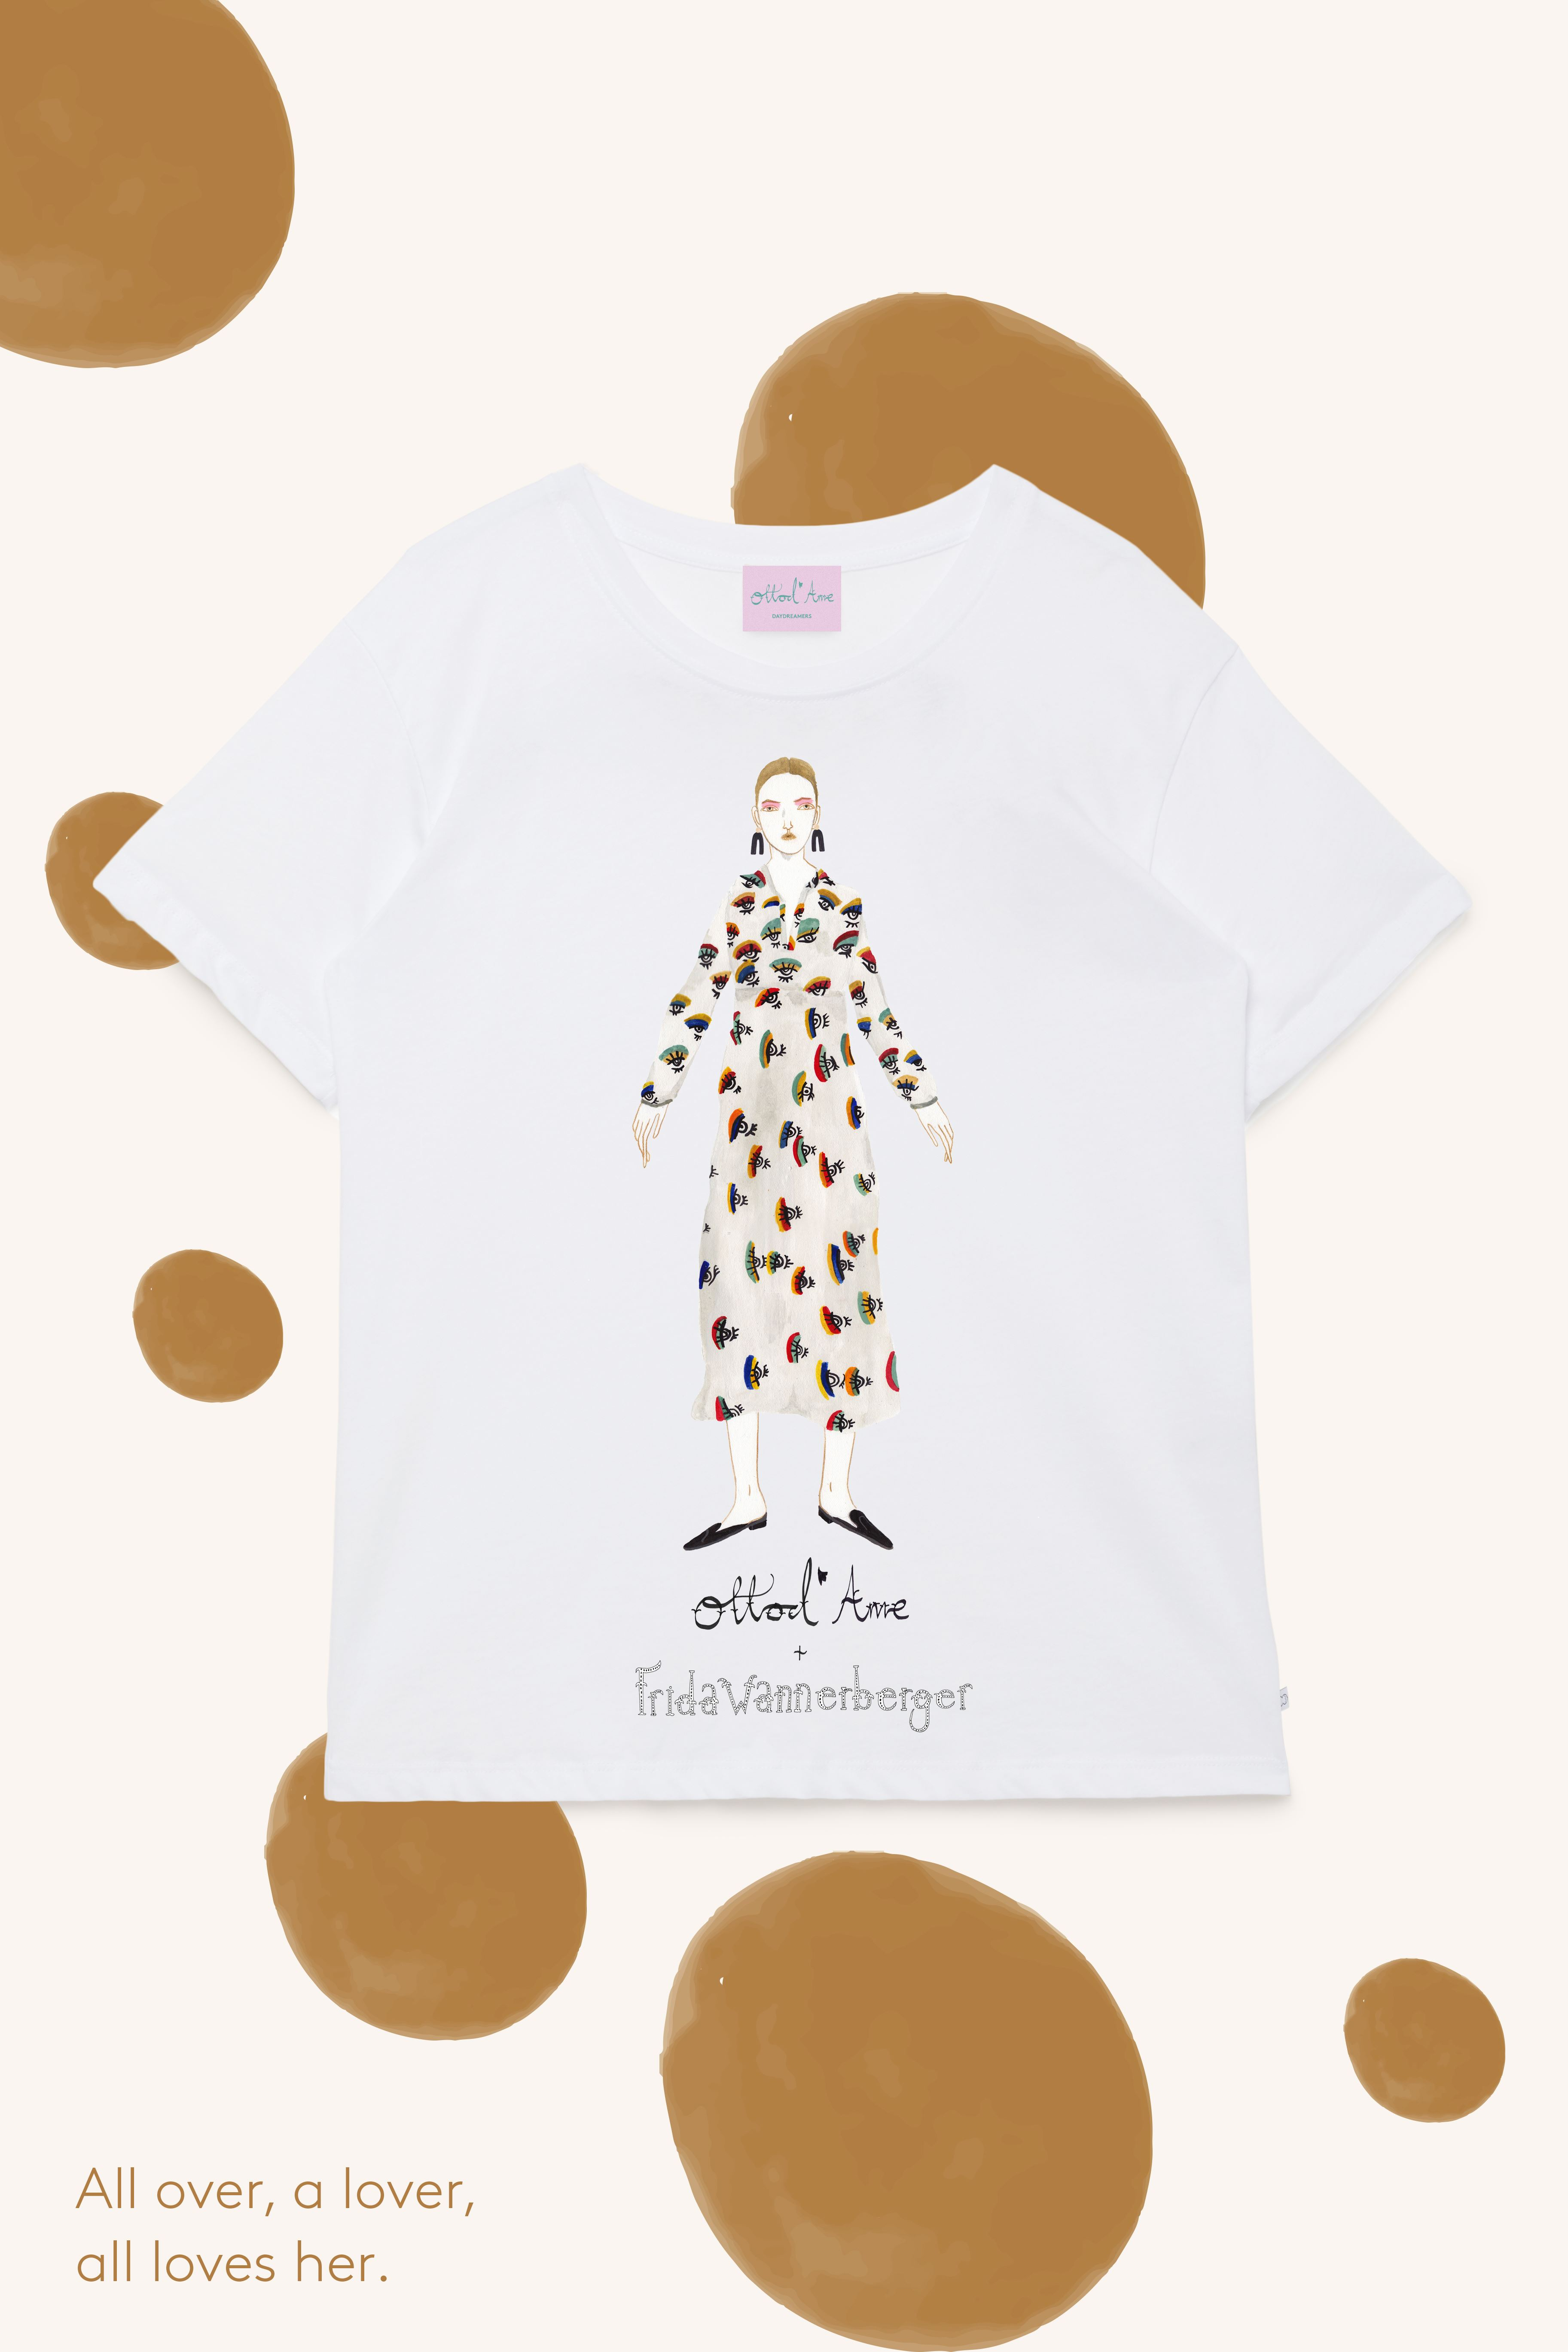 ottod'Ame + Frida Wannerberger capsule collection in support of The Circle Italia